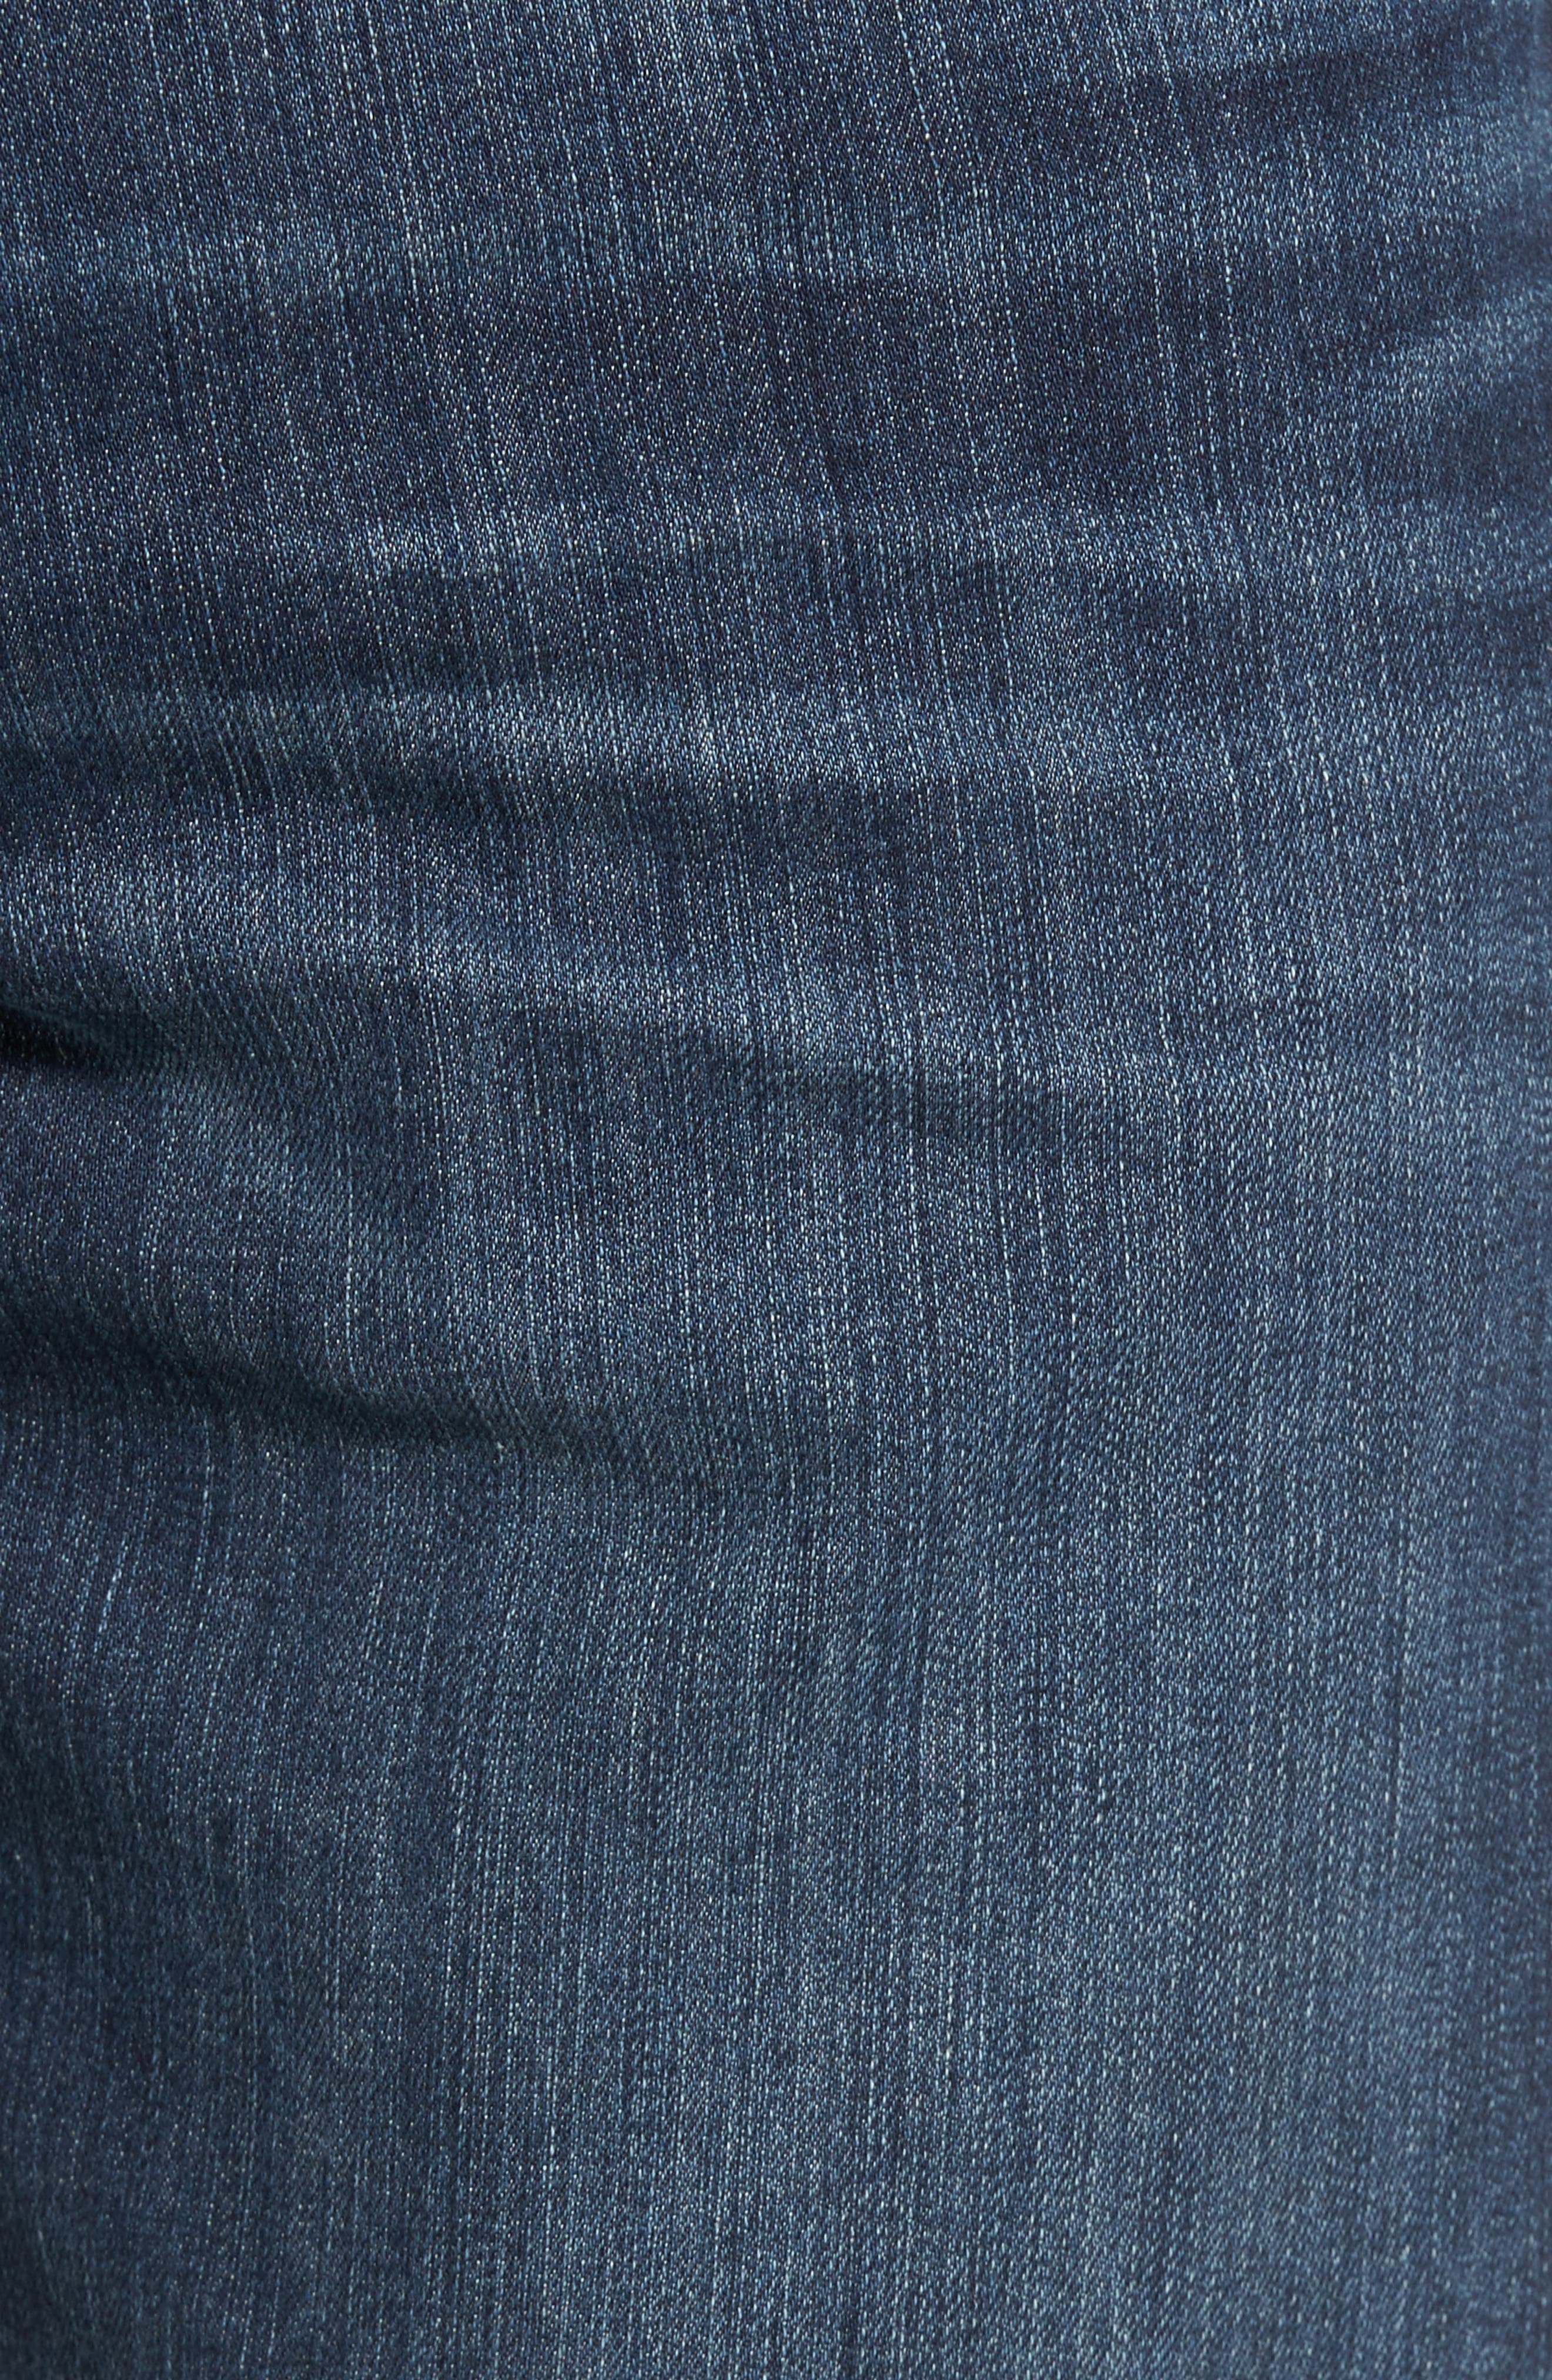 Legacy - Normandie Straight Fit Jeans,                             Alternate thumbnail 5, color,                             400